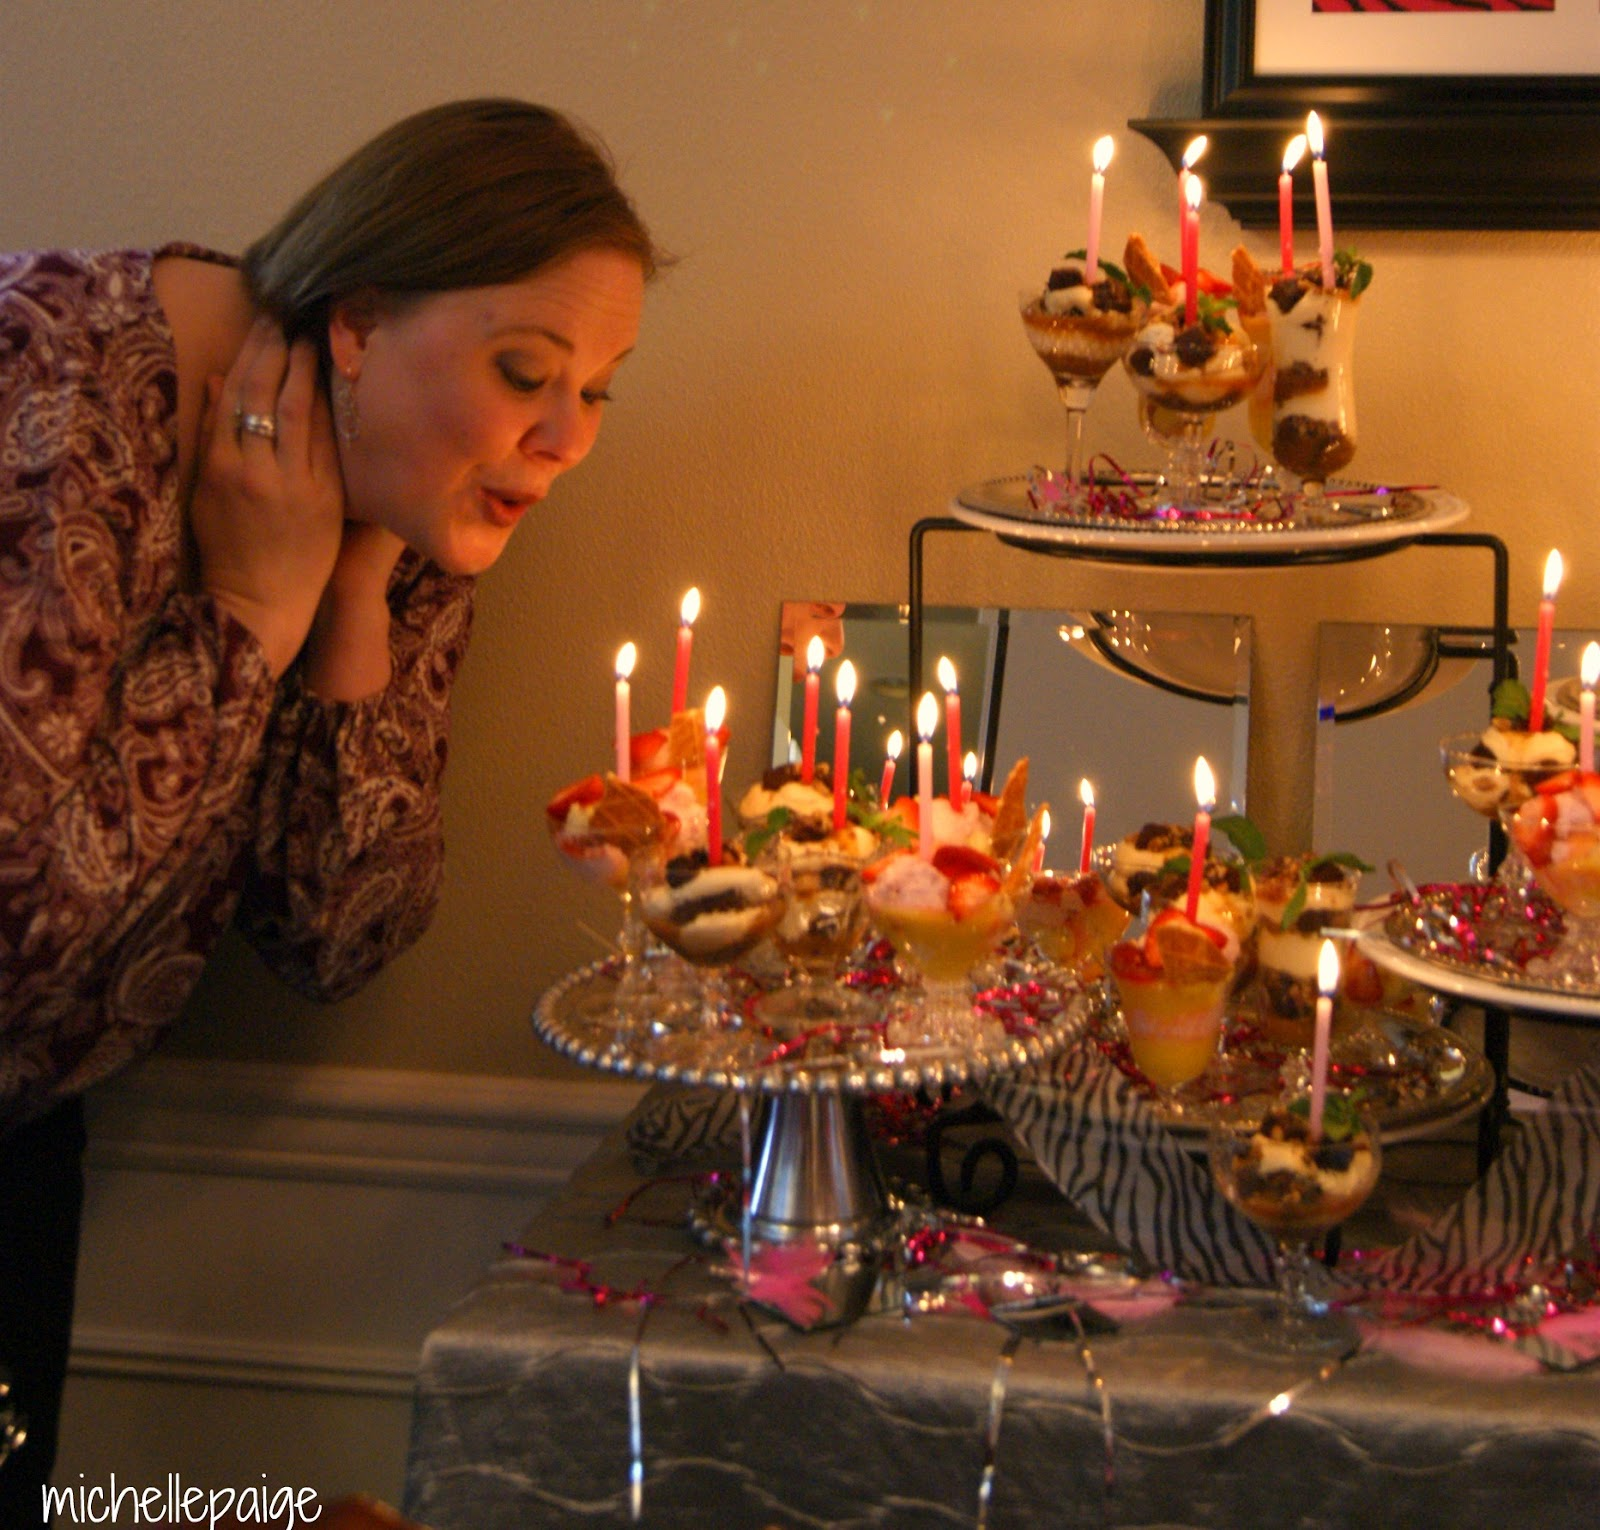 Elegant Birthday Cakes With Candles They looked so elegant and